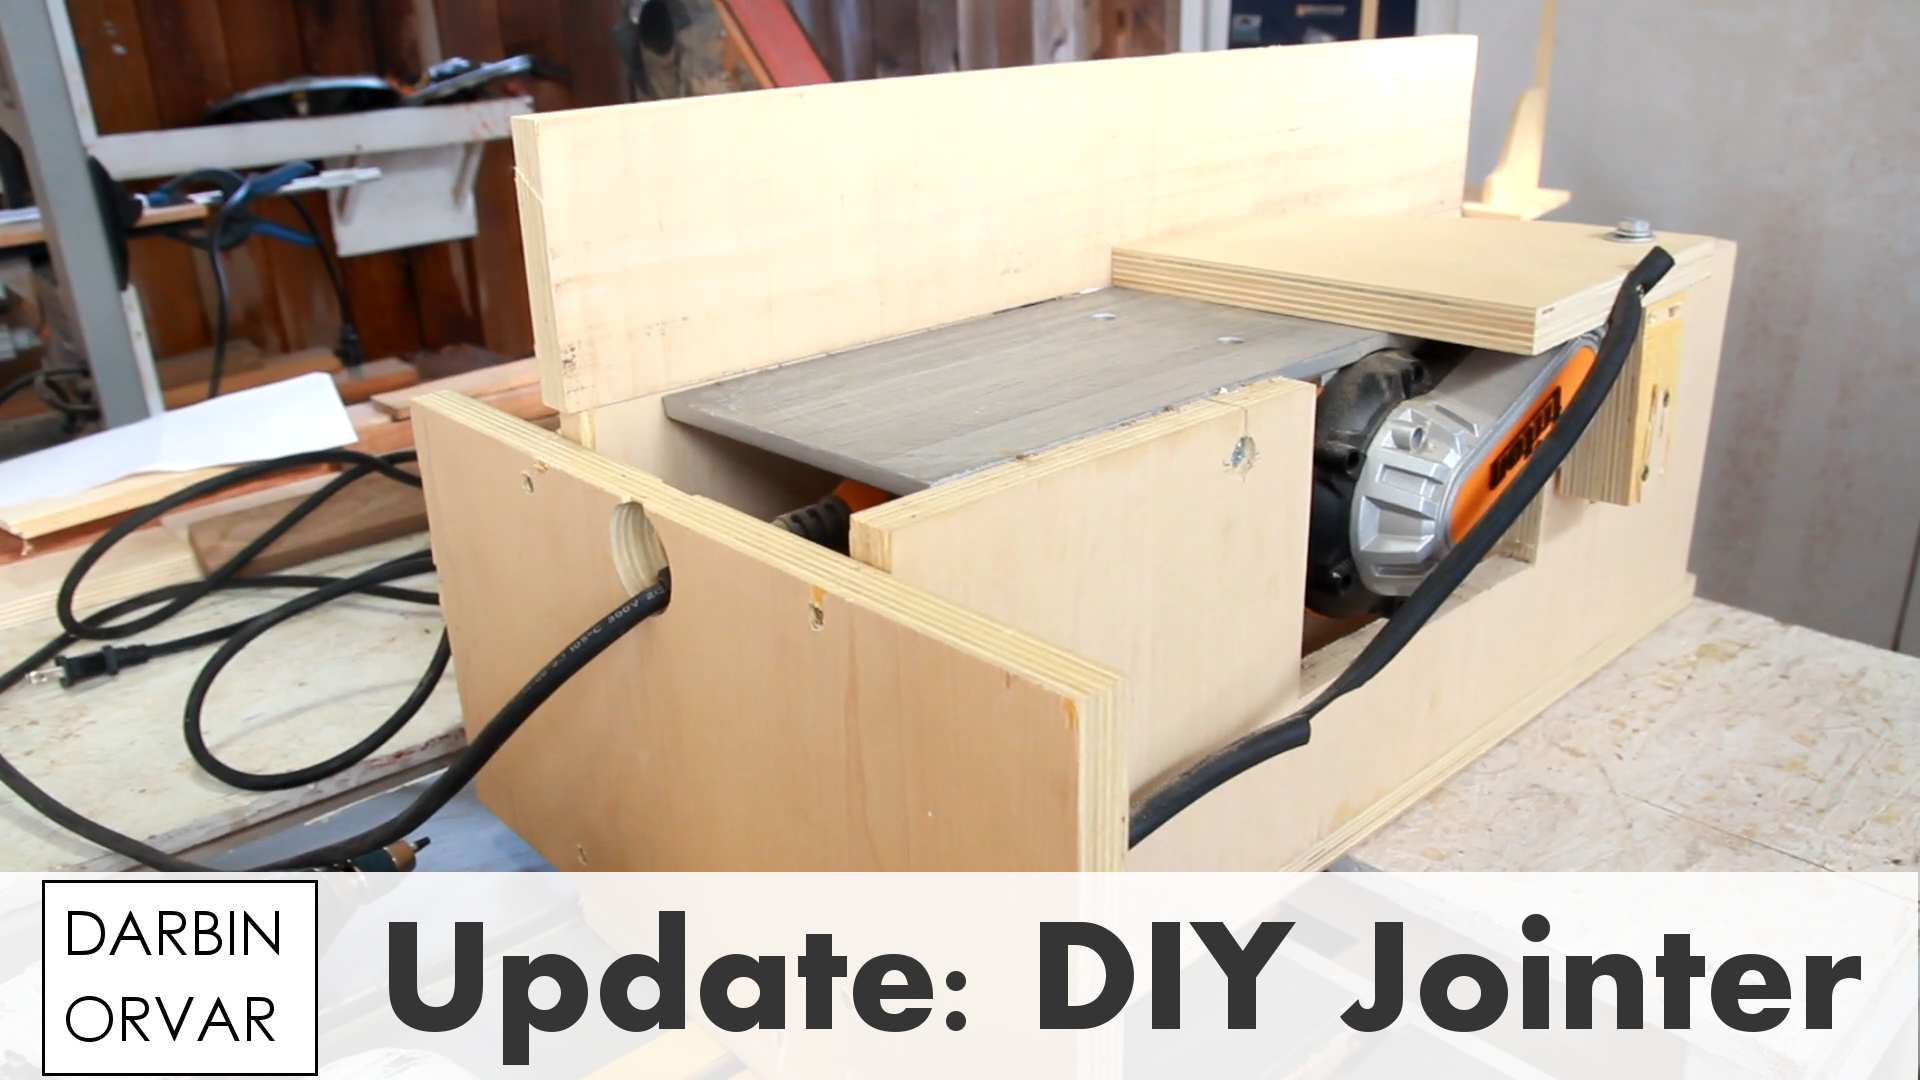 In this shop update I go over how I made my DIY jointer with a power planer, as well as mail time and some of my thoughts.